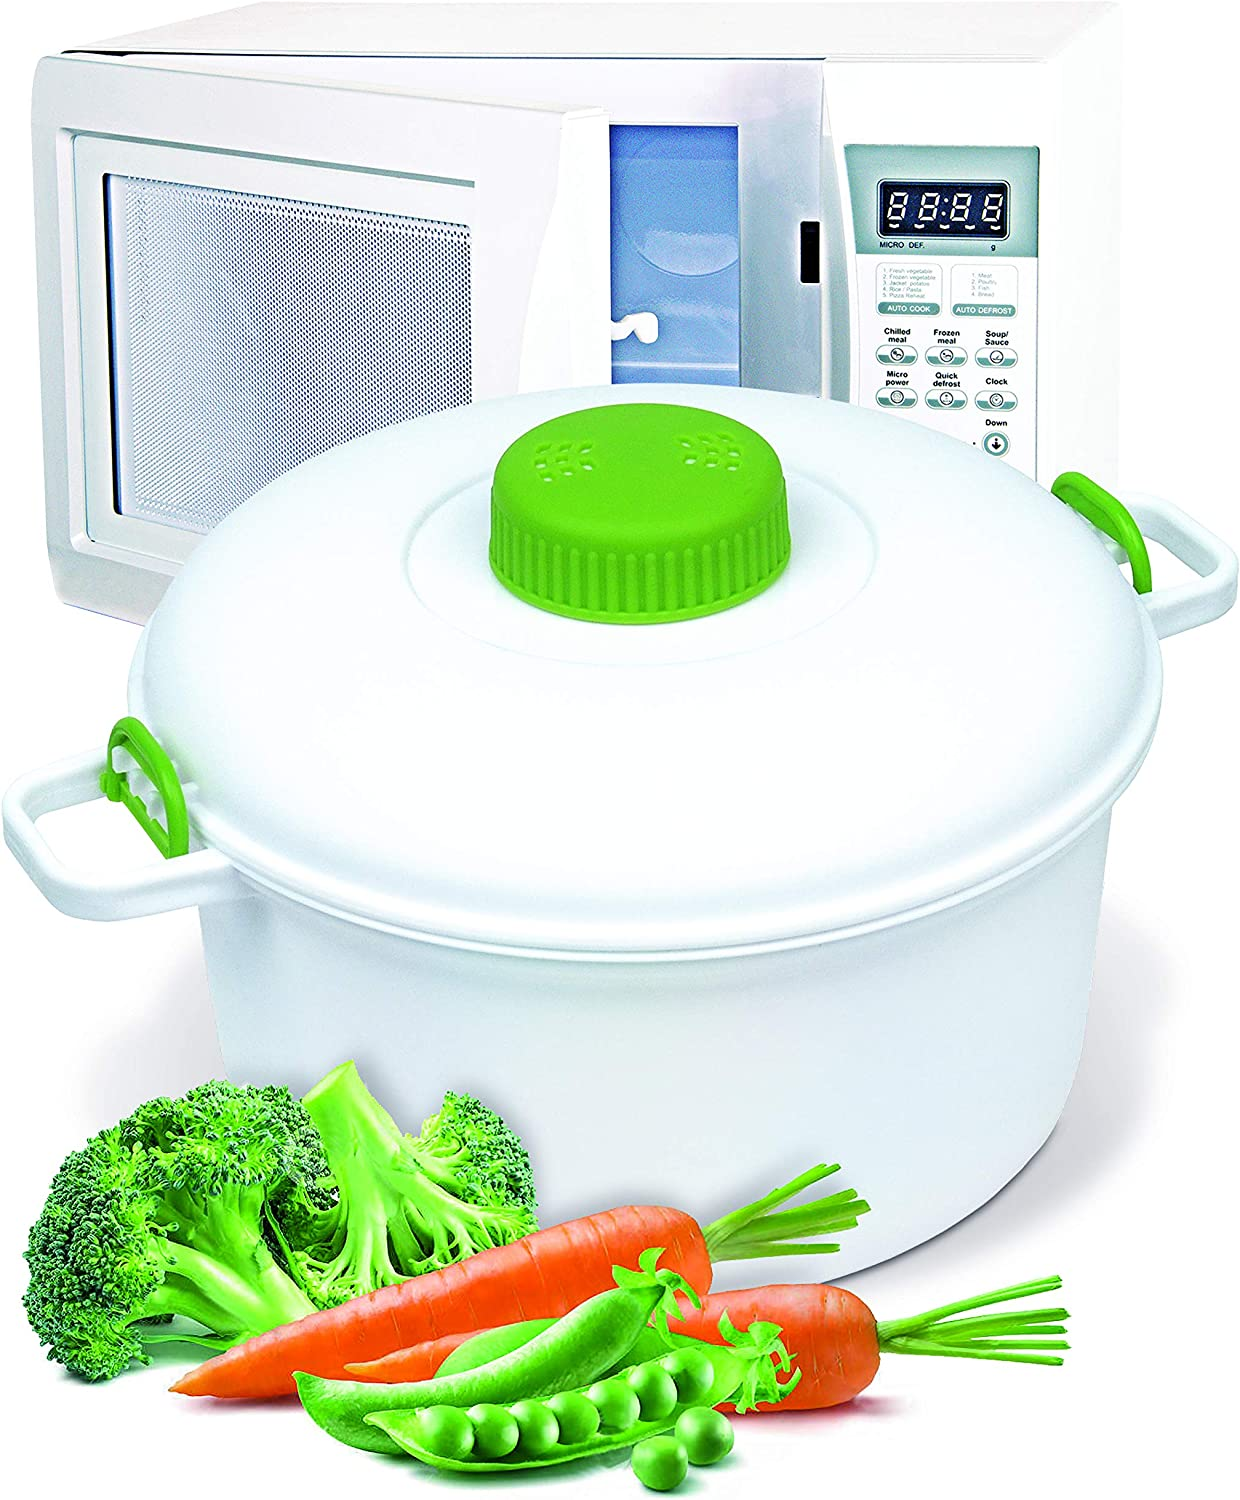 Pressure Cookers Microwave it Pressure Cooker 27 x 21 x 15 cm ...